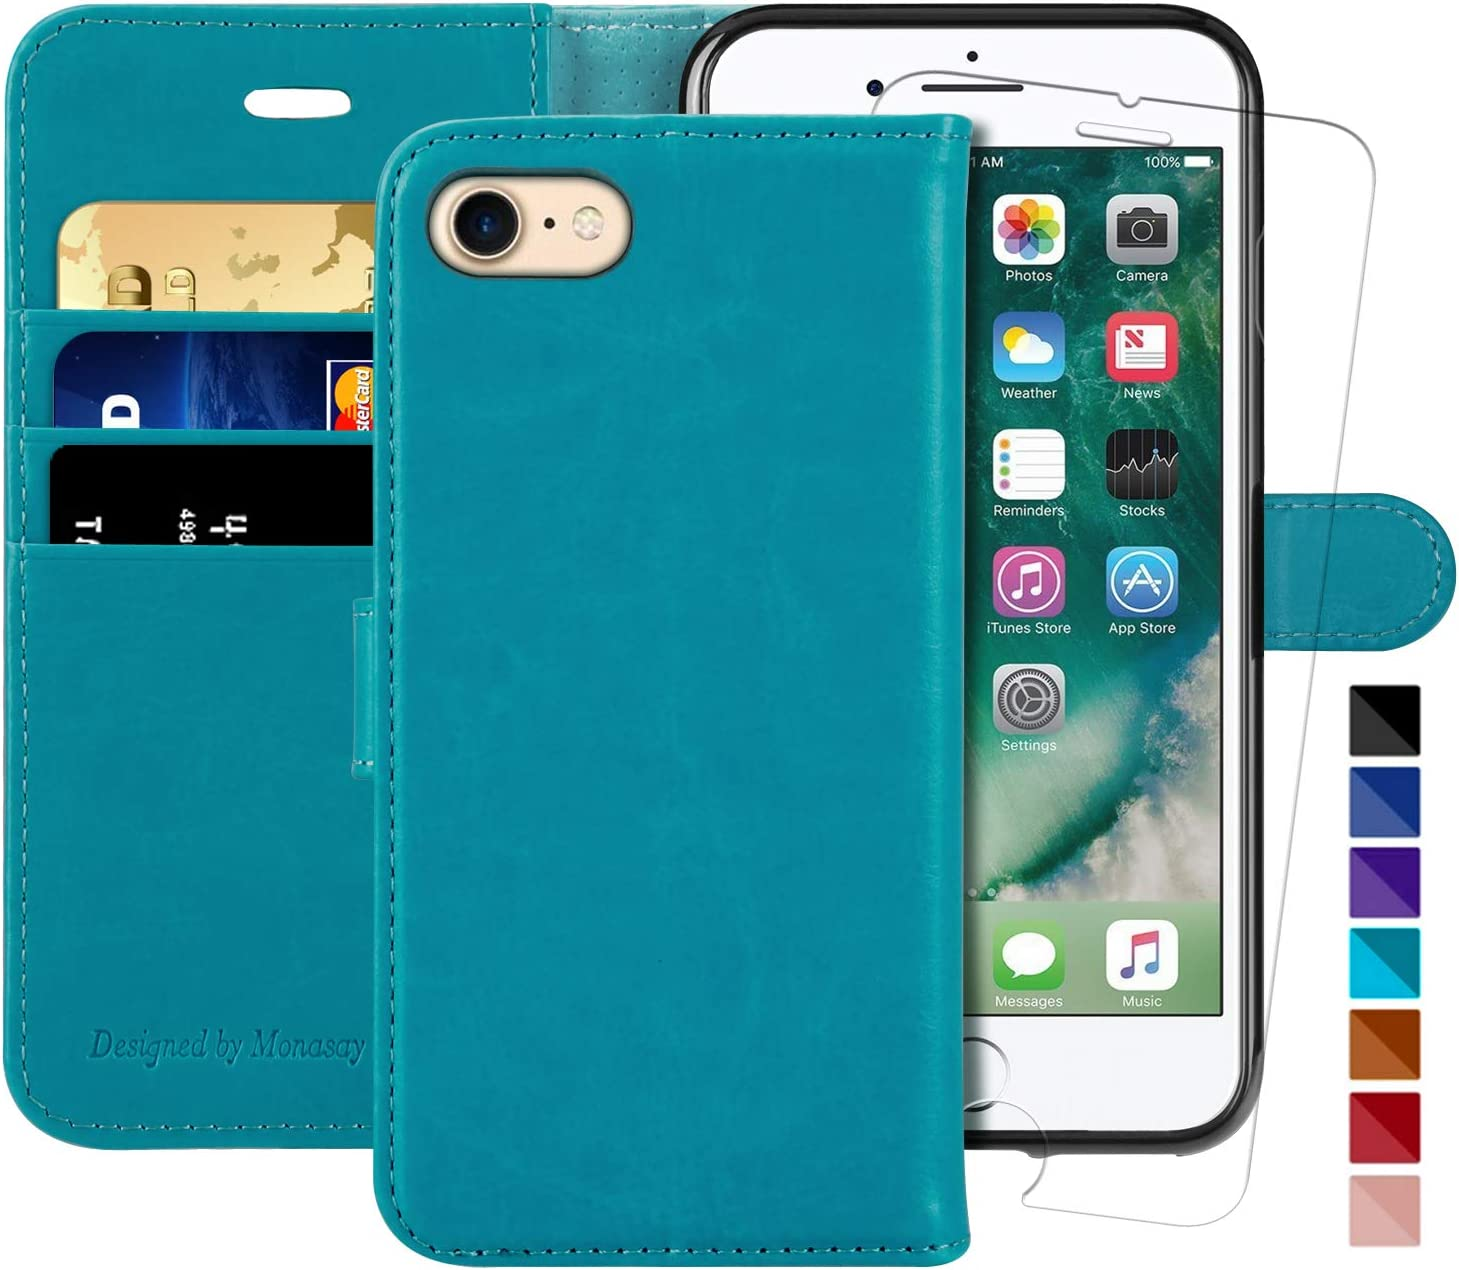 iPhone 6 Wallet Case/iPhone 6s Wallet Case,4.7-inch, MONASAY [Glass Screen Protector Included] Flip Folio Leather Cell Phone Cover with Credit Card Holder for Apple iPhone 6/6S (Light Blue)